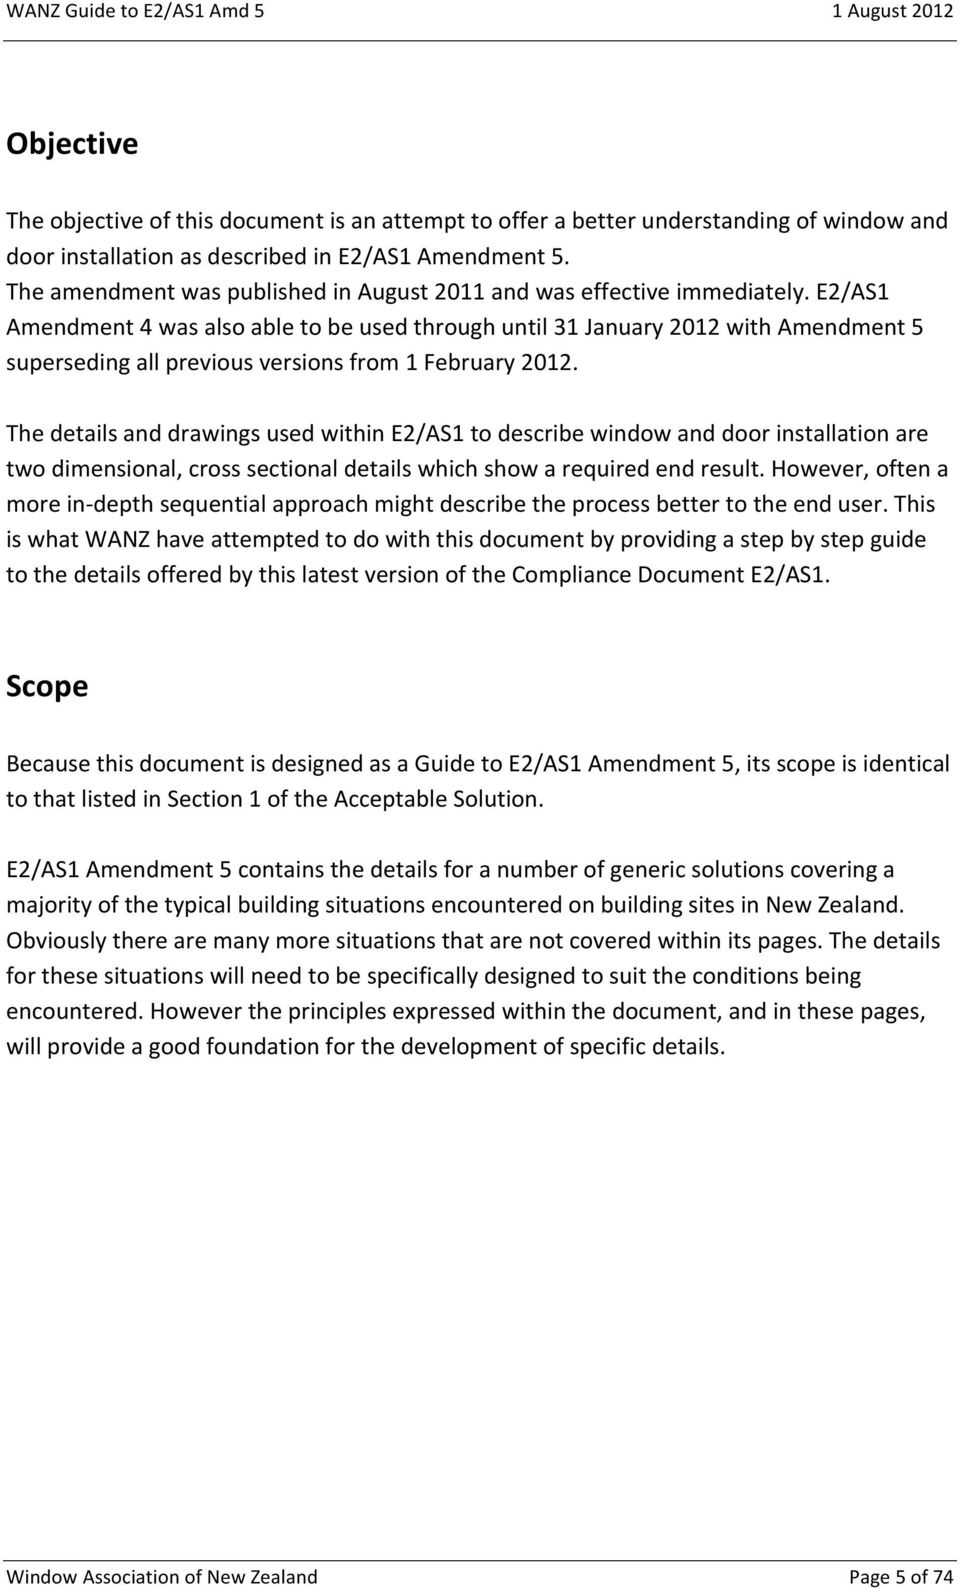 E2/AS1 Amendment 4 was also able to be used through until 31 January 2012 with Amendment 5 superseding all previous versions from 1 February 2012.